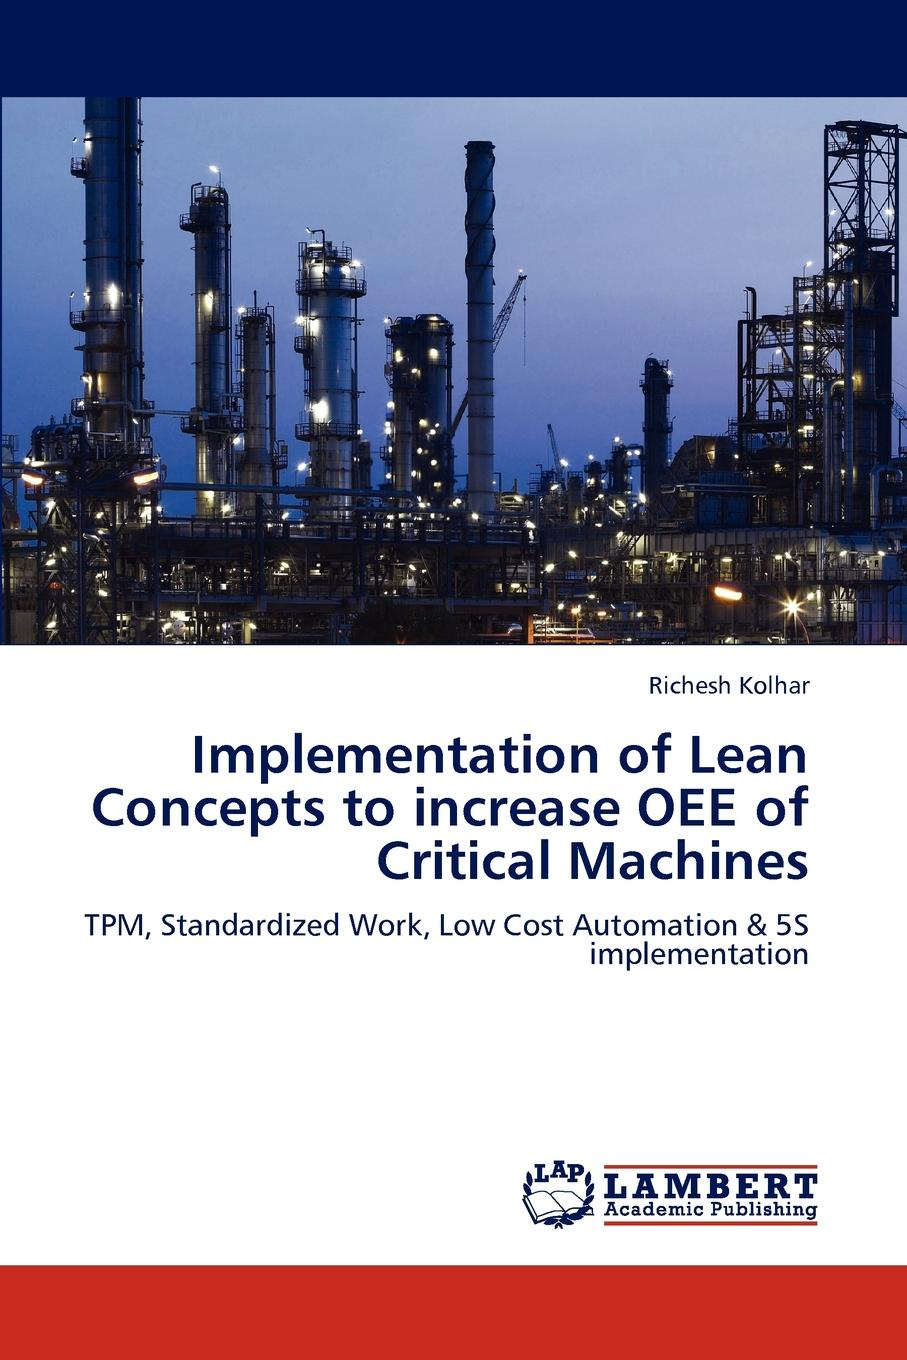 Richesh Kolhar Implementation of Lean Concepts to increase OEE of Critical Machines cost effectiveness analysis of pmtct service delivery modalities